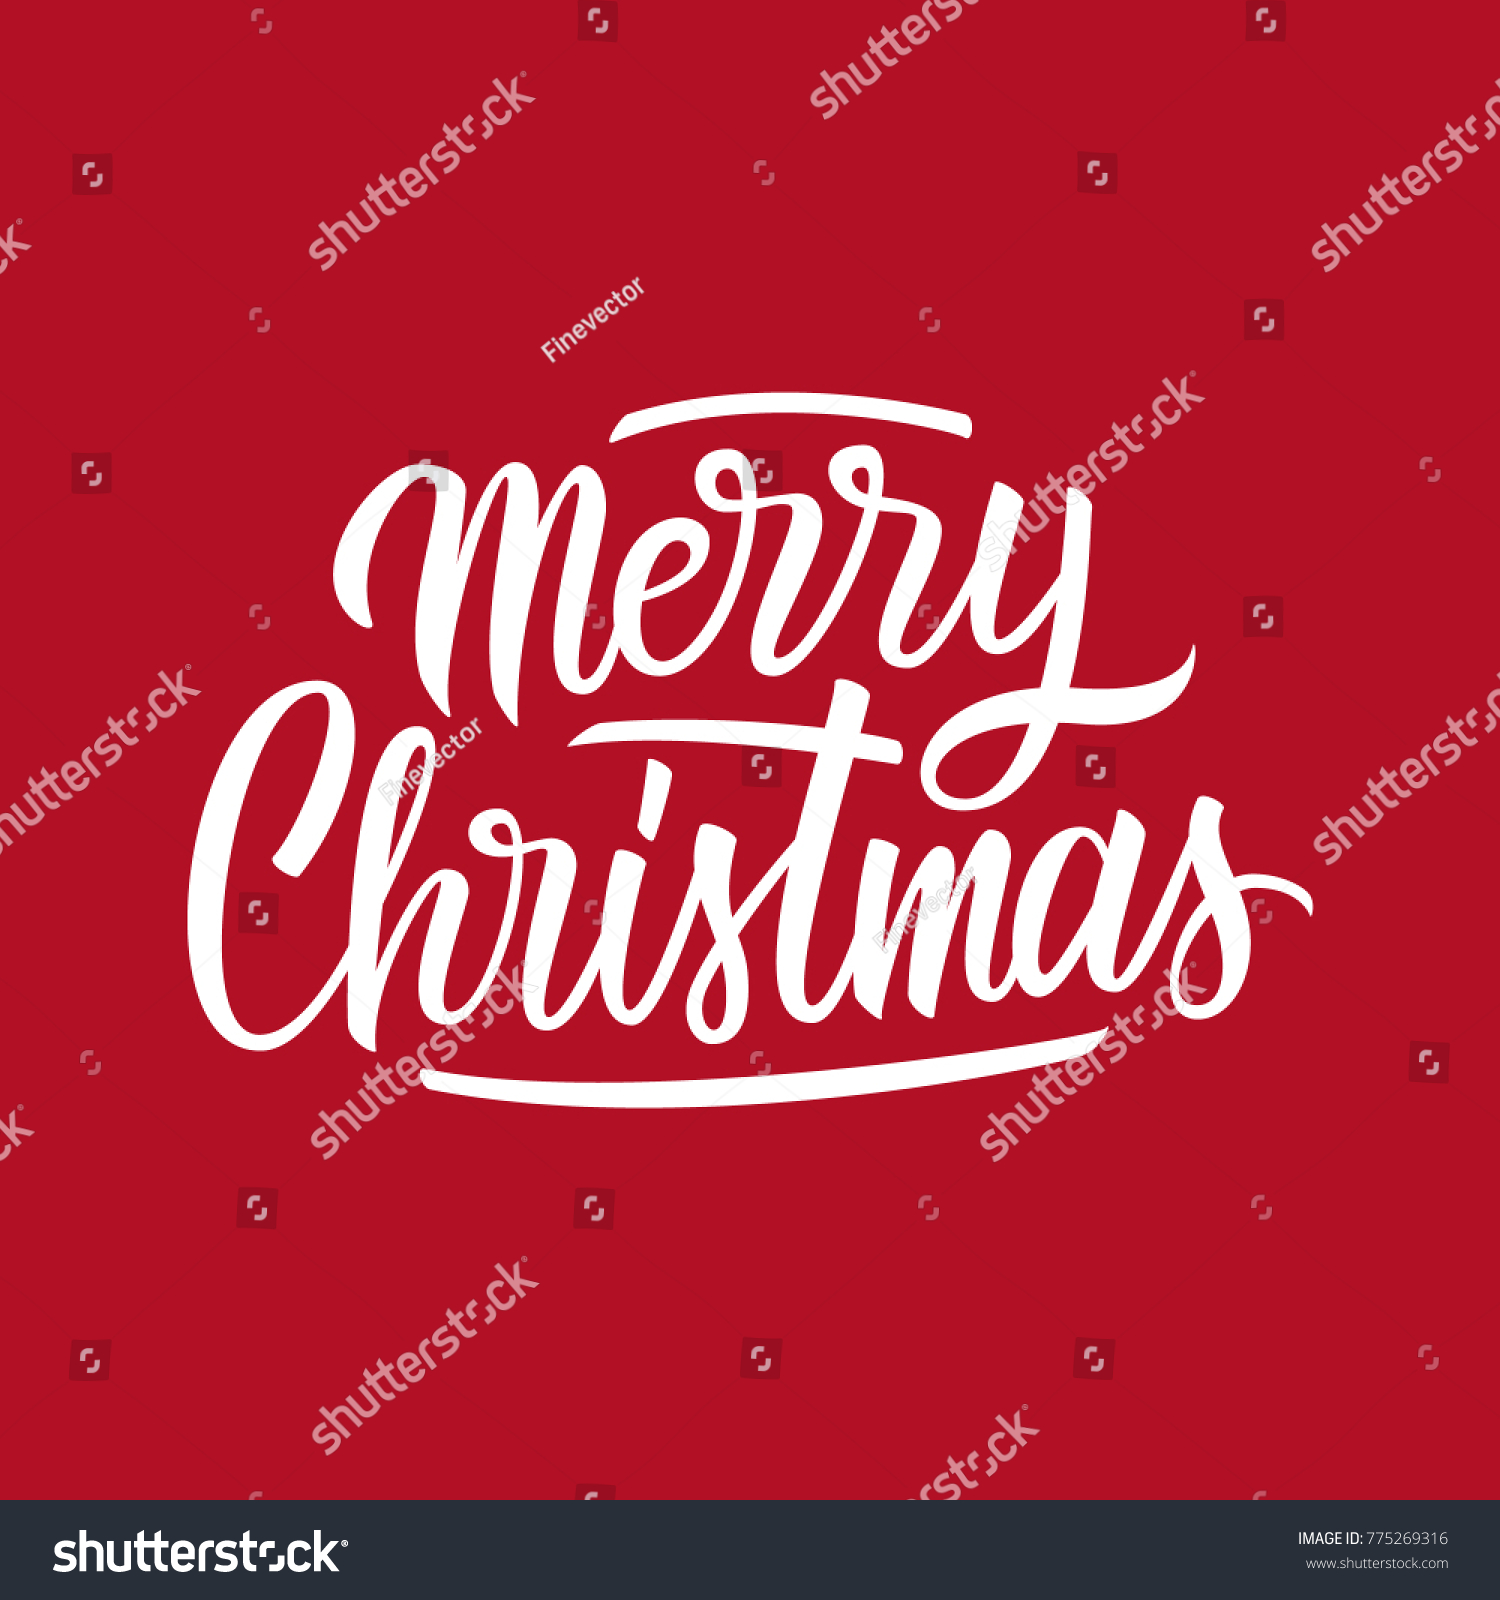 Merry christmas hand drawn lettering text stock vector 775269316 merry christmas hand drawn lettering text design card template creative typography for holiday greetings kristyandbryce Choice Image